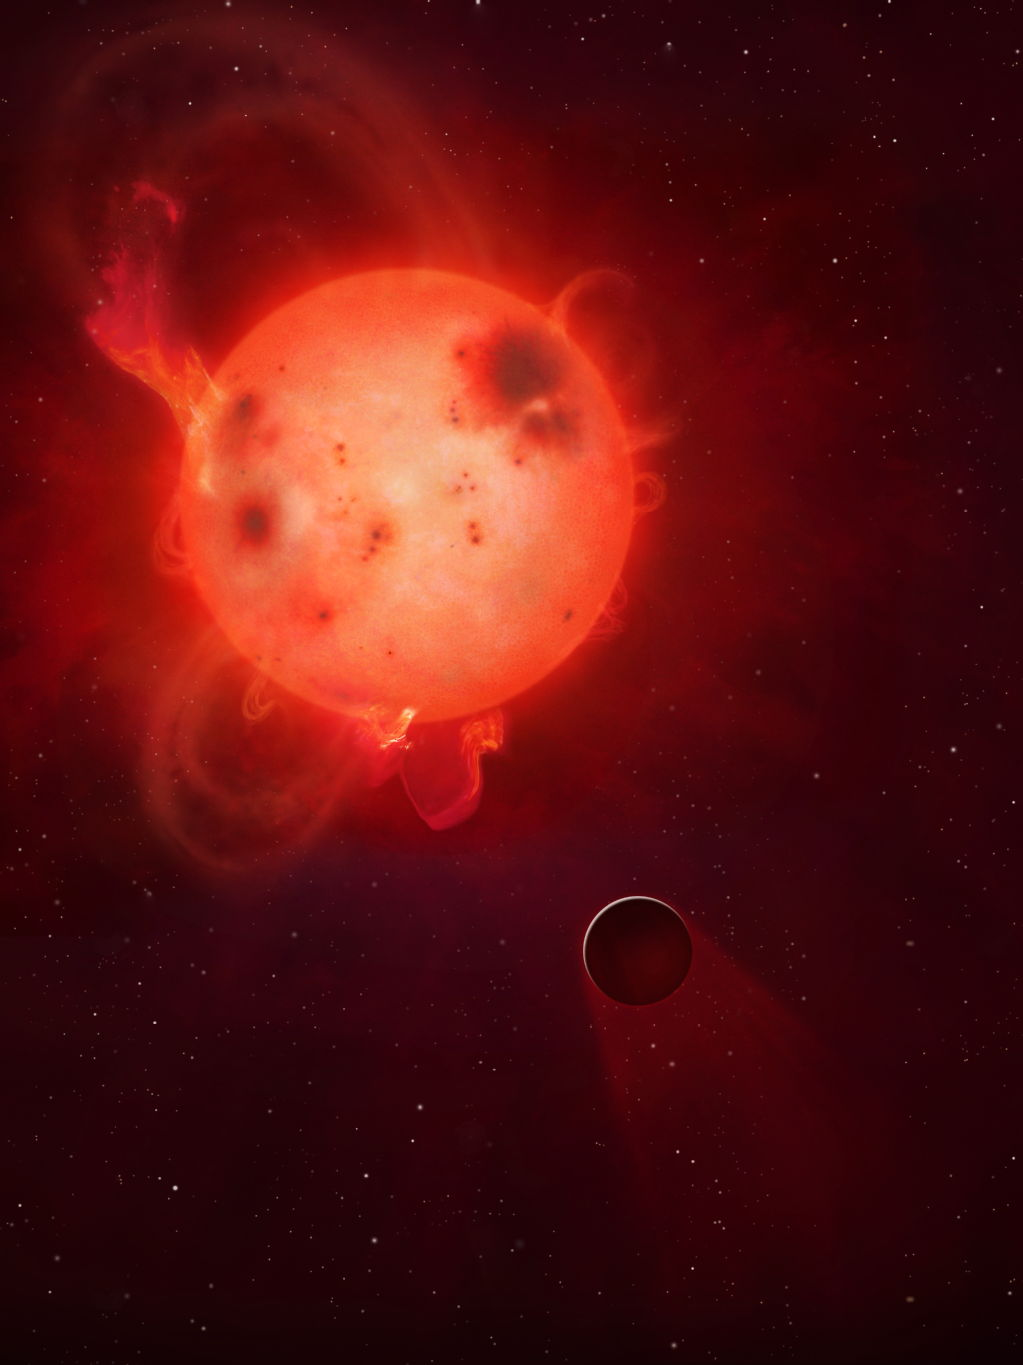 Image caption: Kepler-438b: The planet Kepler-438b is shown here in front of its violent parent star. It is regularly irradiated by huge flares of radiation, which could render the planet uninhabitable. Here the planet's atmosphere is shown being stripped away.